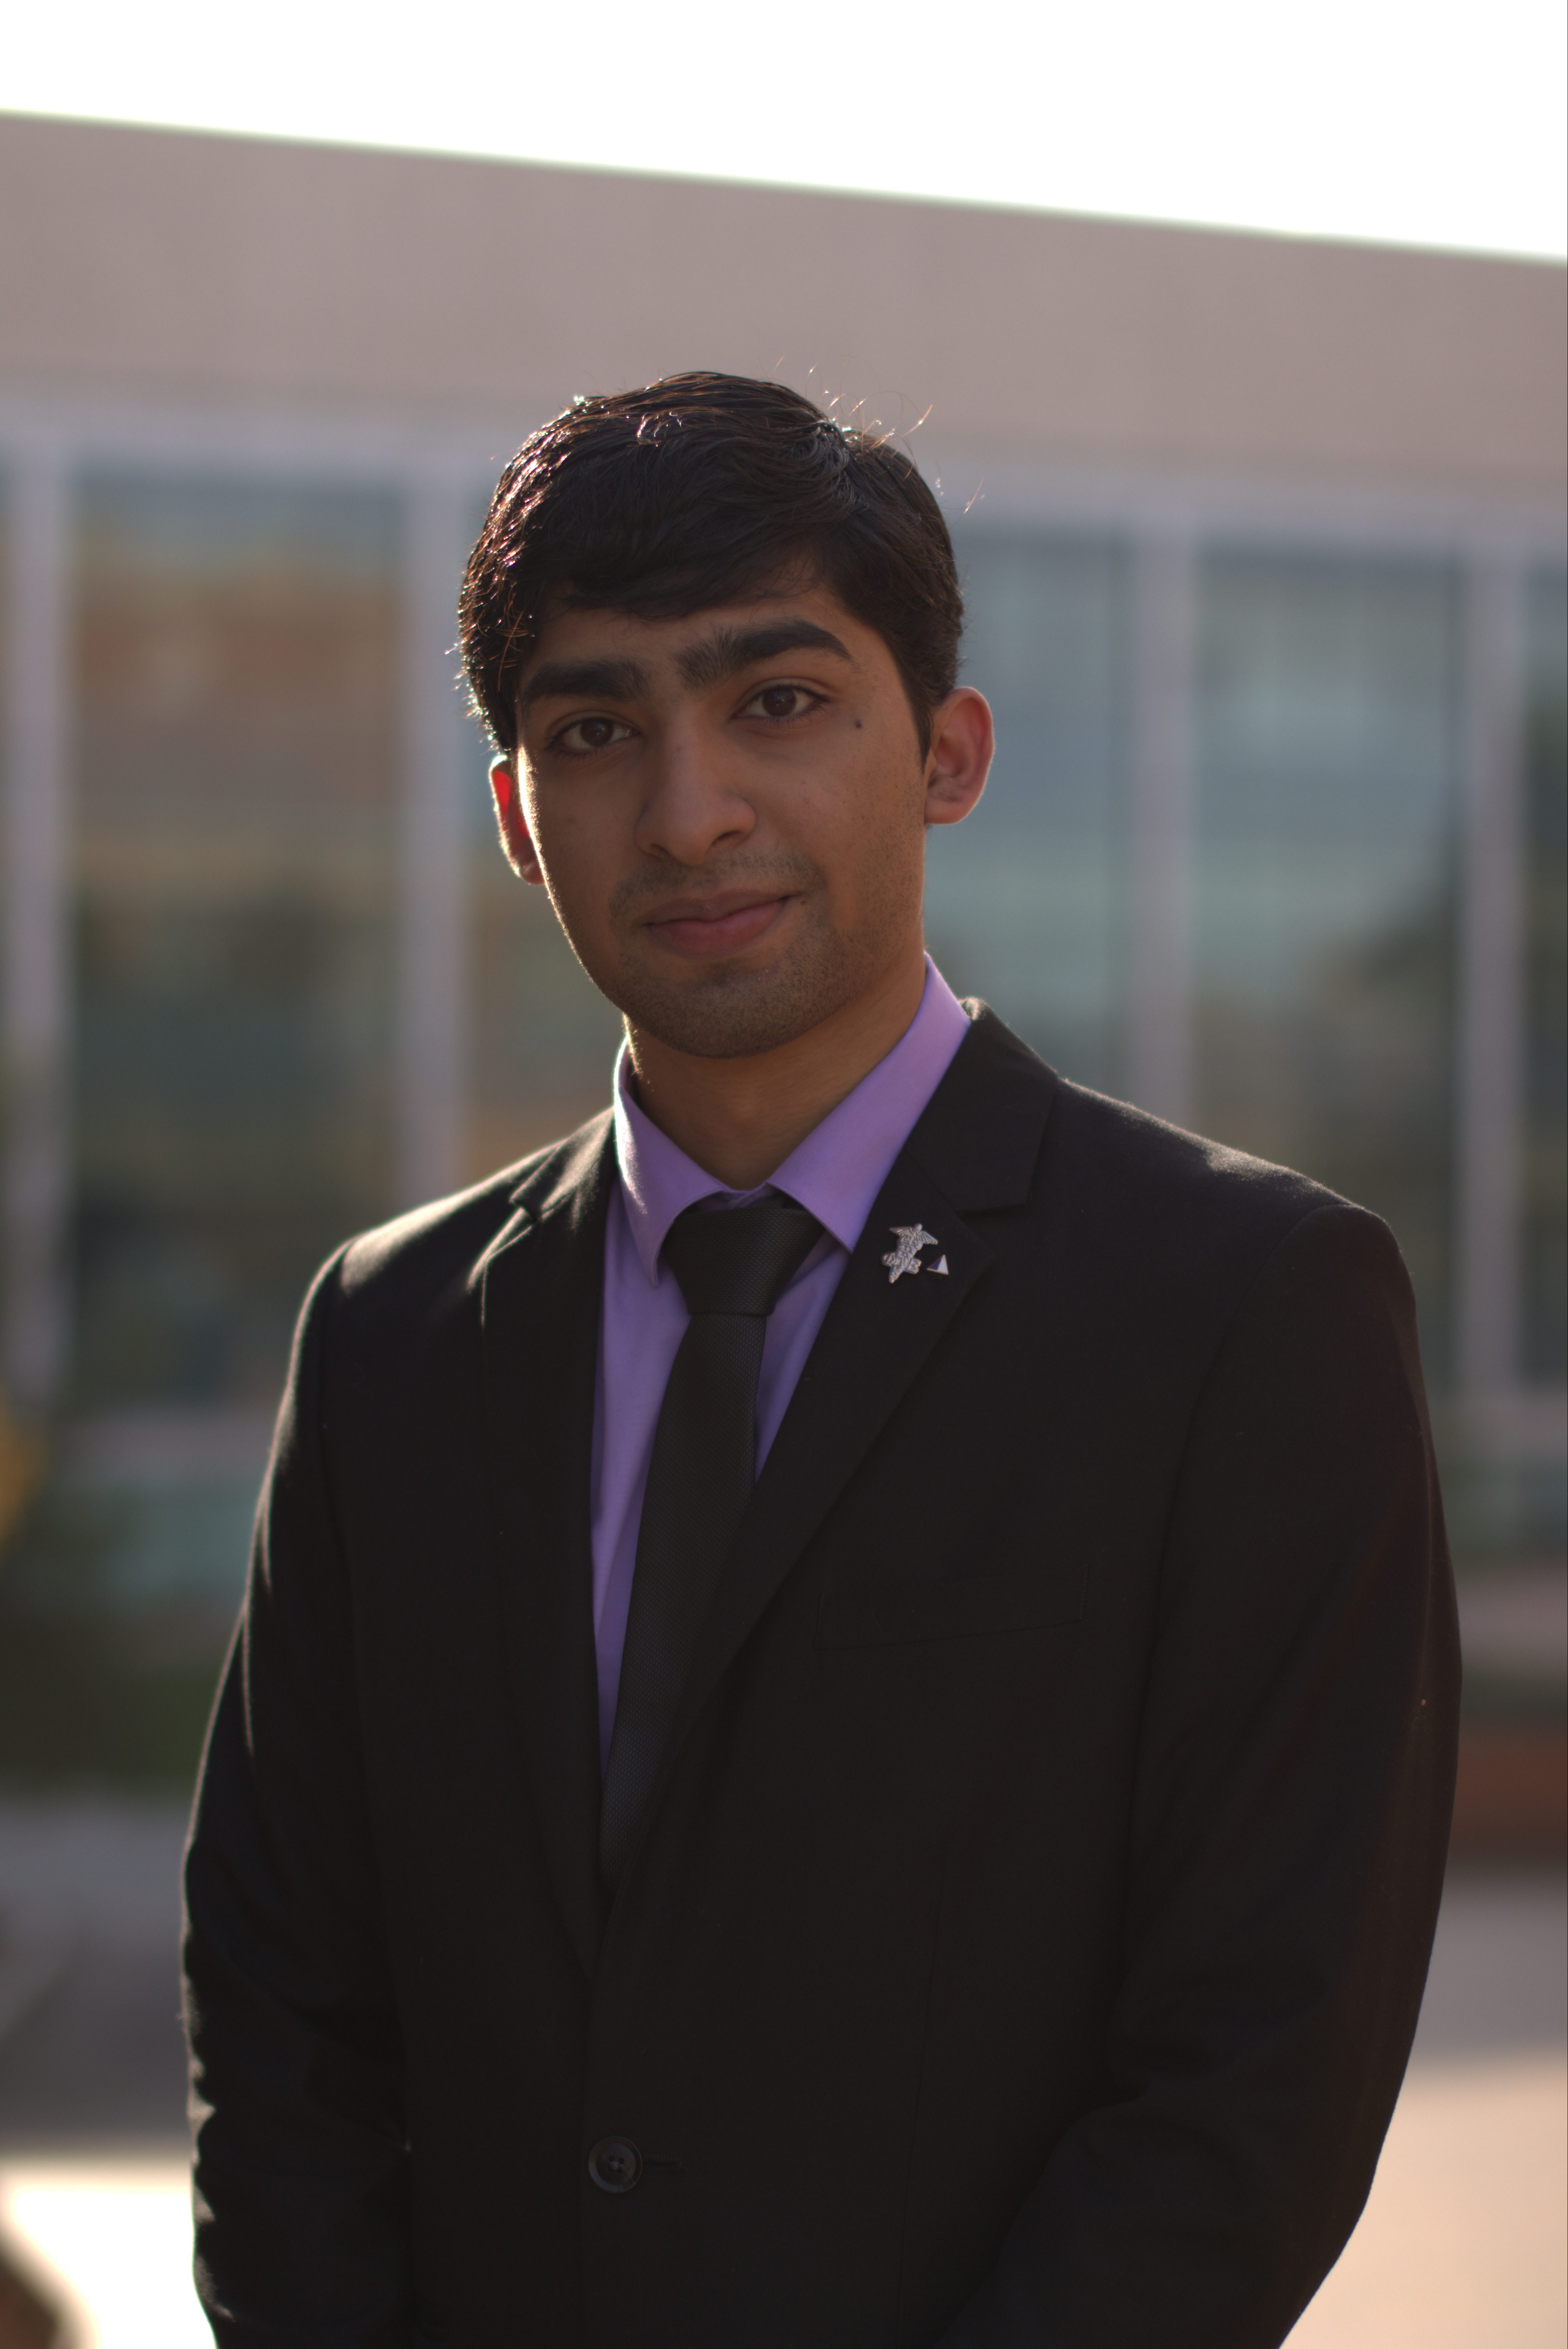 Rahul in a suit for the camera